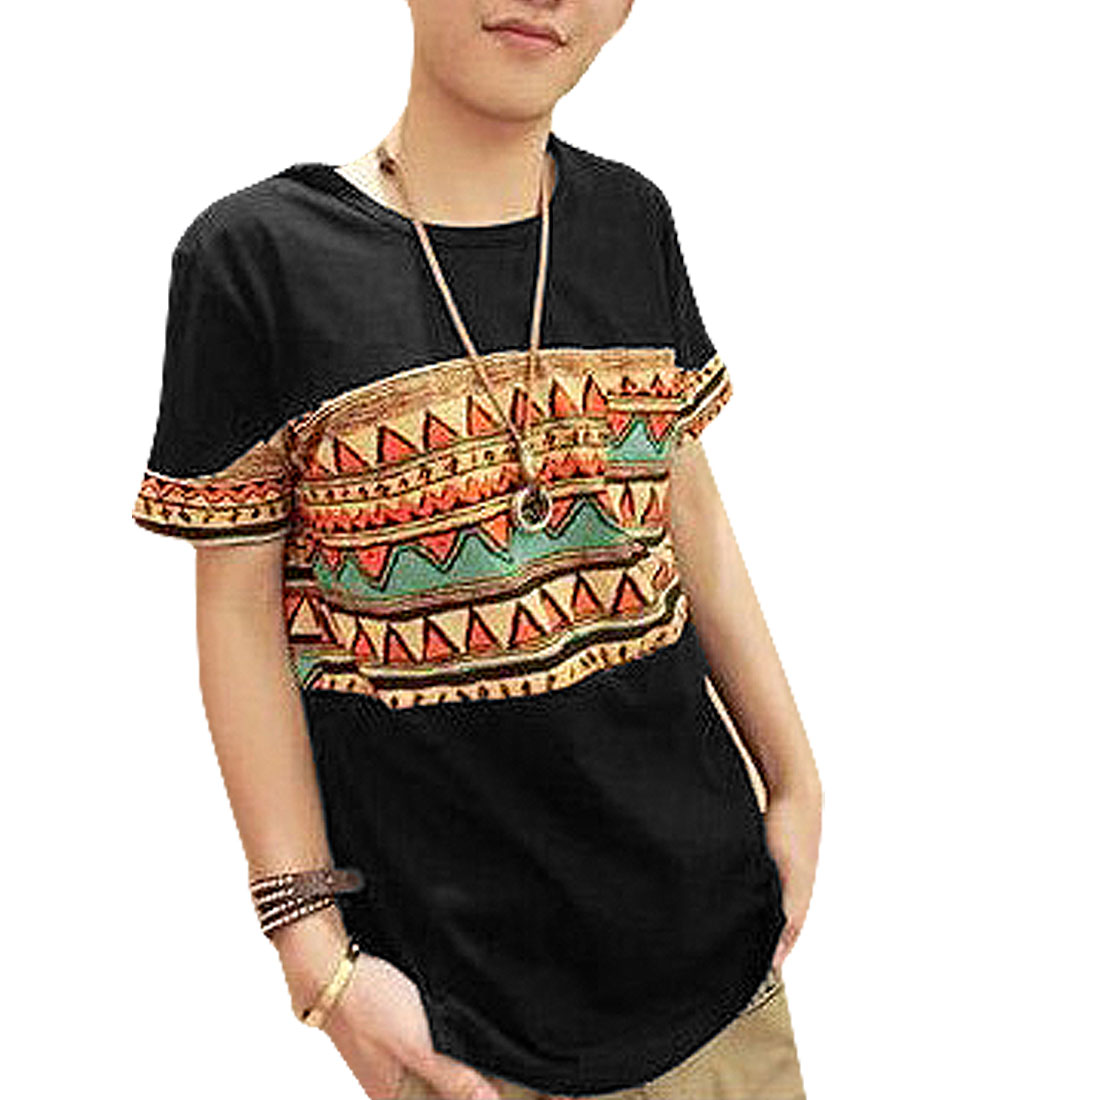 Fashional National Style Zigzag Printed Casual T-Shirt Black S for Man